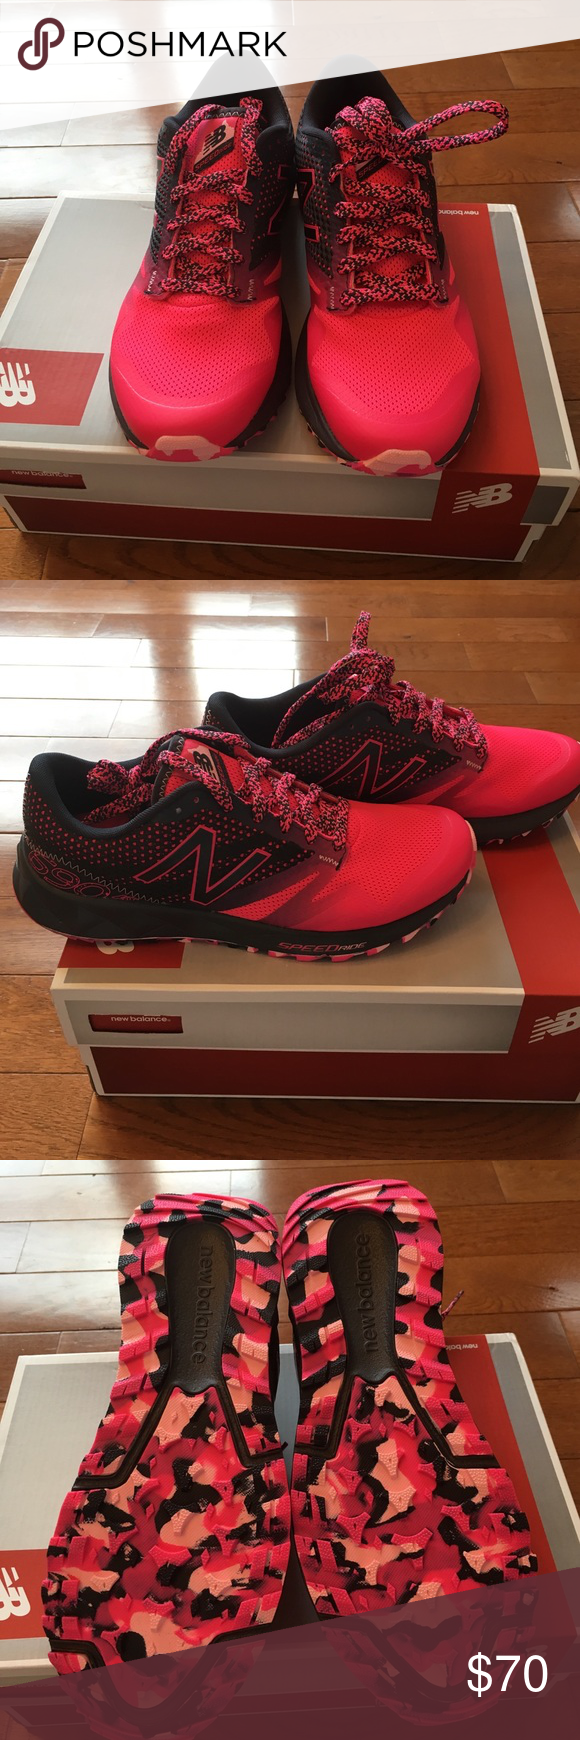 🔴 New Balance Running Shoe New Balance Running/Trail shoe-new in box-ordered wrong size & don't want to pay to ship back-bright pink & black. Make a statement in these!! 🚫lowball offers New Balance Shoes Sneakers